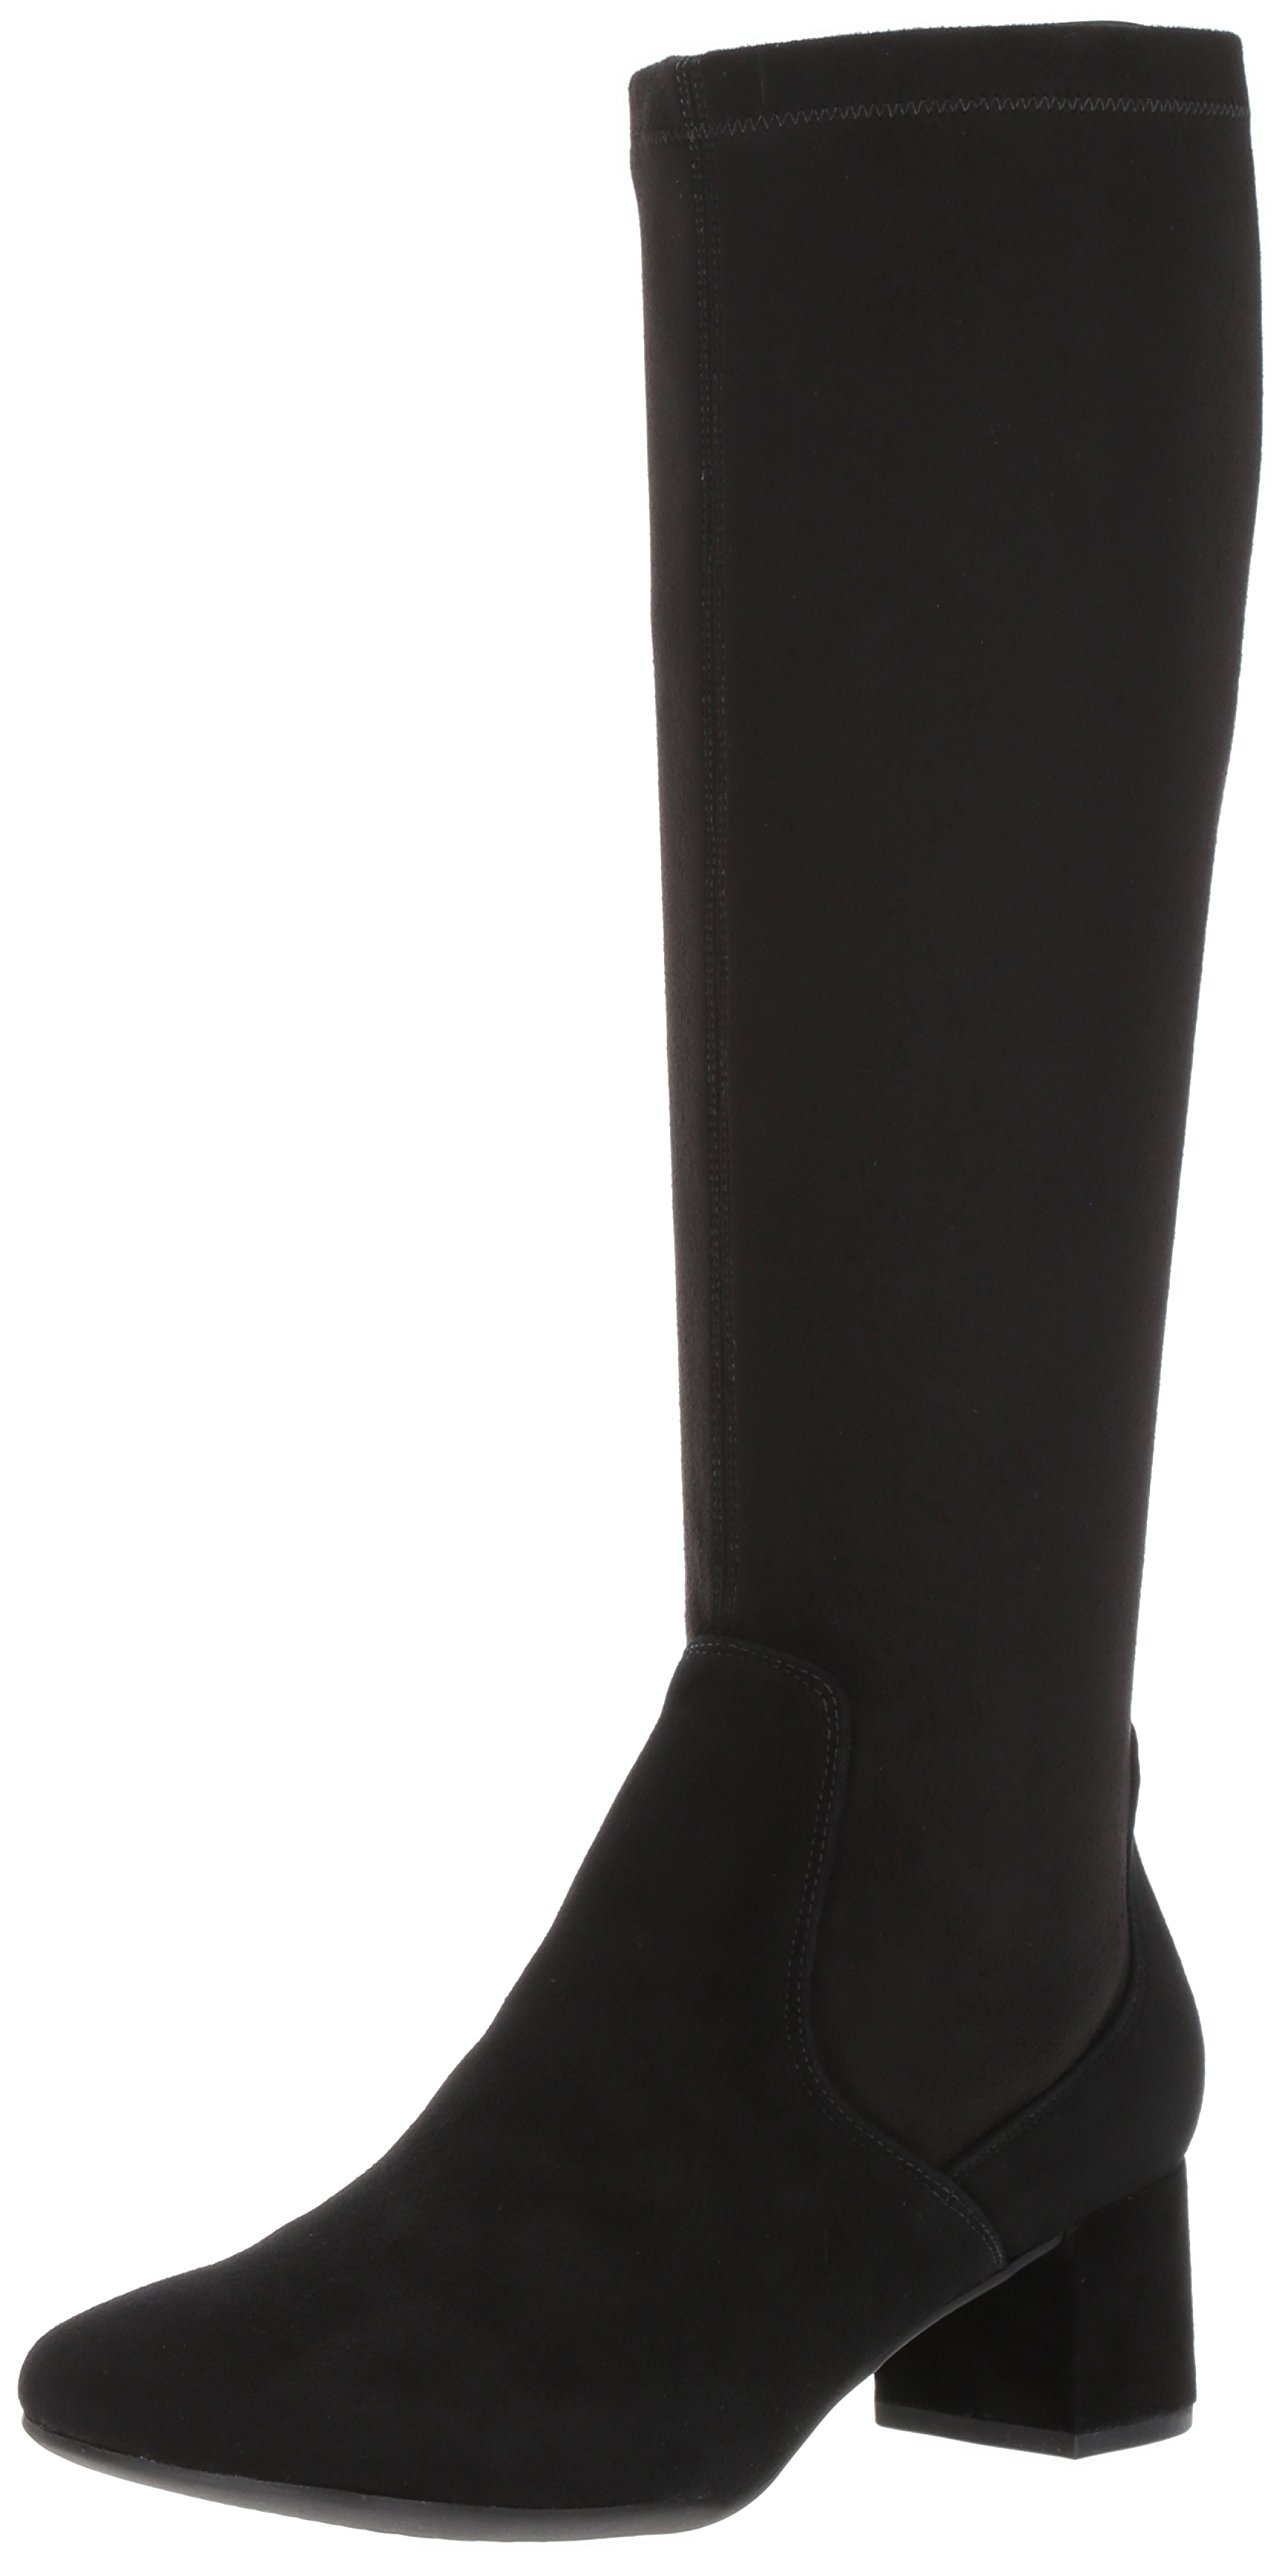 Clarks Women's Tealia Cup Riding Boot, Black Suede, 8.5 M US by CLARKS